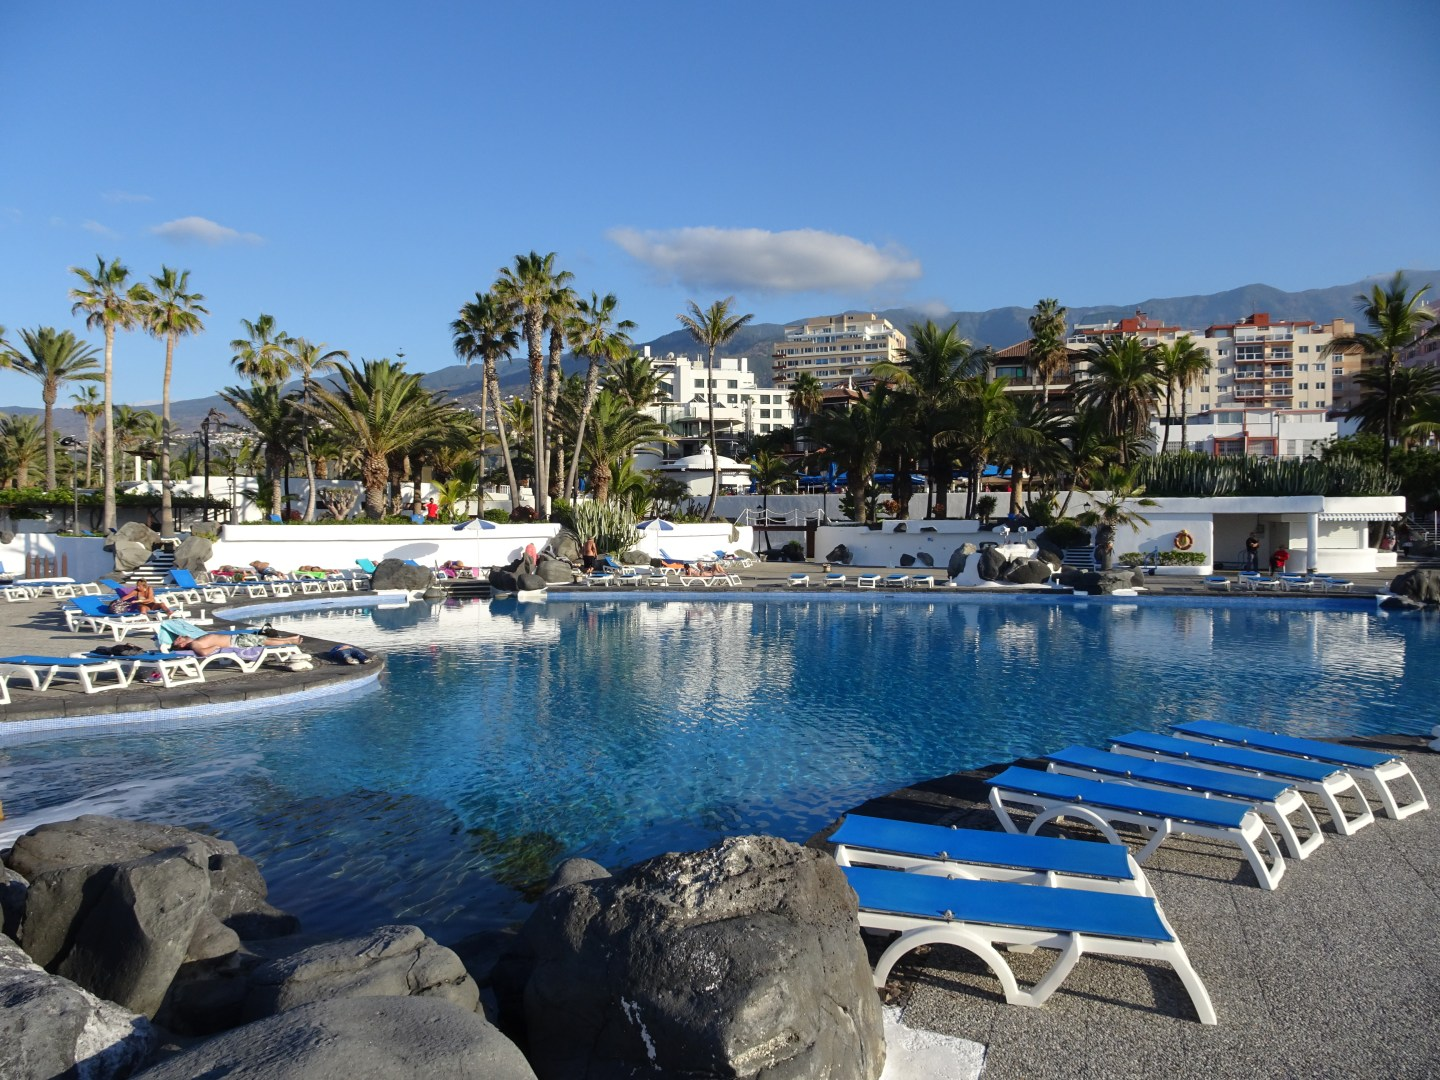 Things to do in North Tenerife